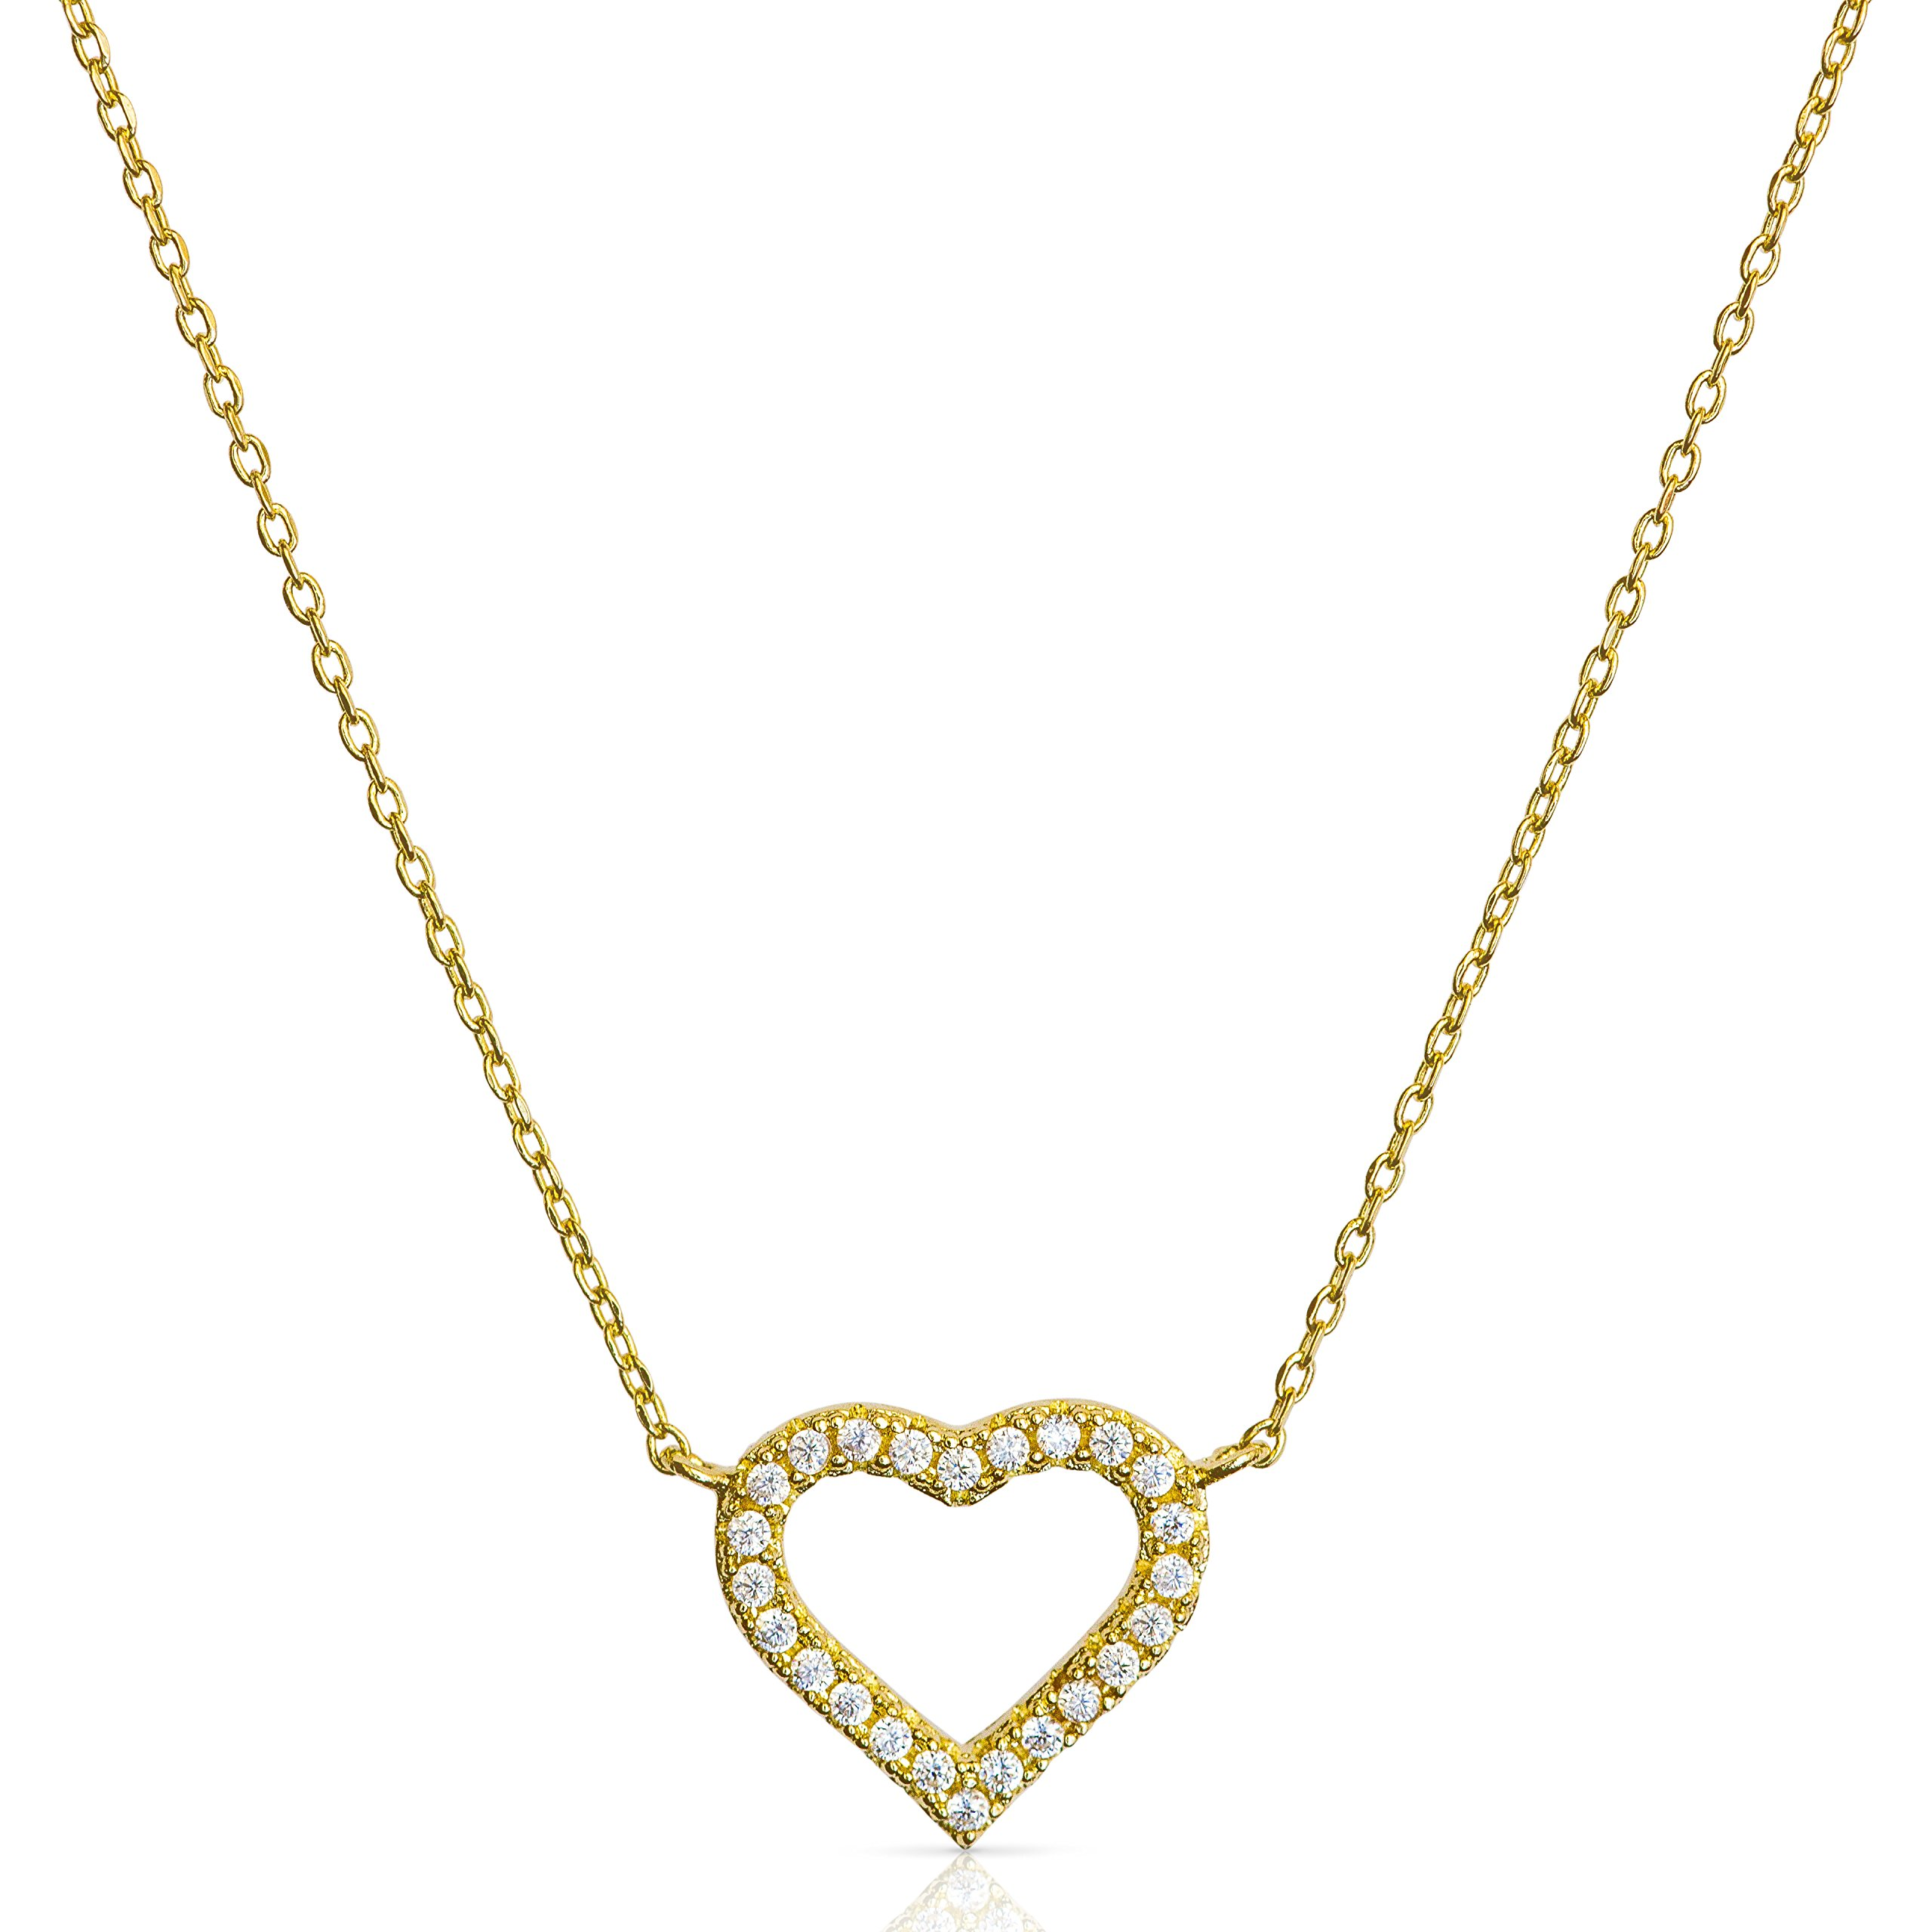 Benevolence LA Gold Necklace Heart Drop Y Vertical Bar: 14k Gold Diamond Shaped Open Circle Cubic Zirconia Looped Long Chain Necklaces for Women Designed by Candace Cameron Bure (Heart)